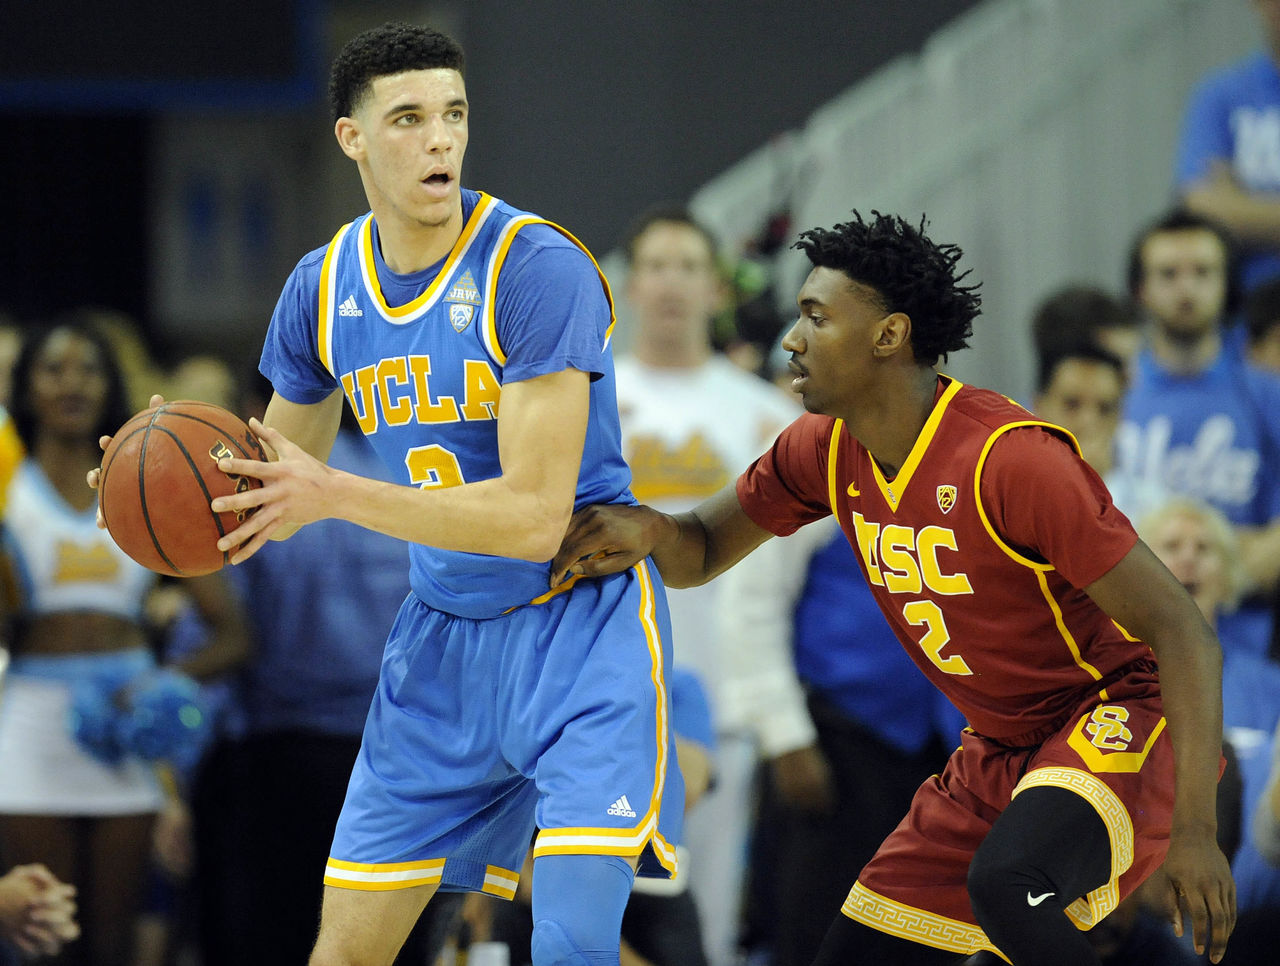 Cropped_2017-02-19t050640z_929445260_nocid_rtrmadp_3_ncaa-basketball-southern-california-at-ucla